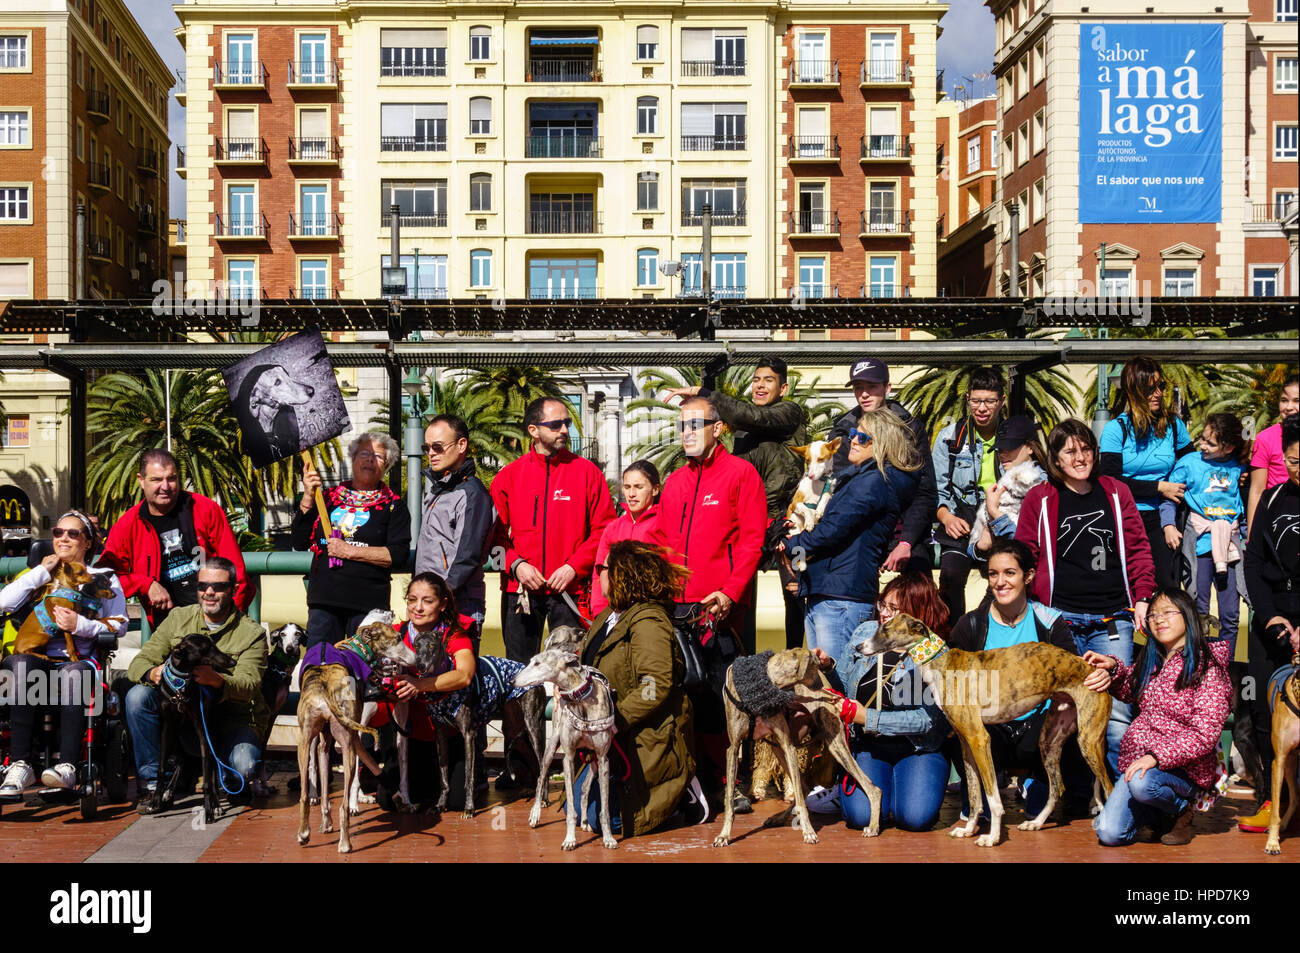 Greyhound protest Galgos Espanol Galgos Español in Malaga, Spain. 05 February 2017 - Stock Image